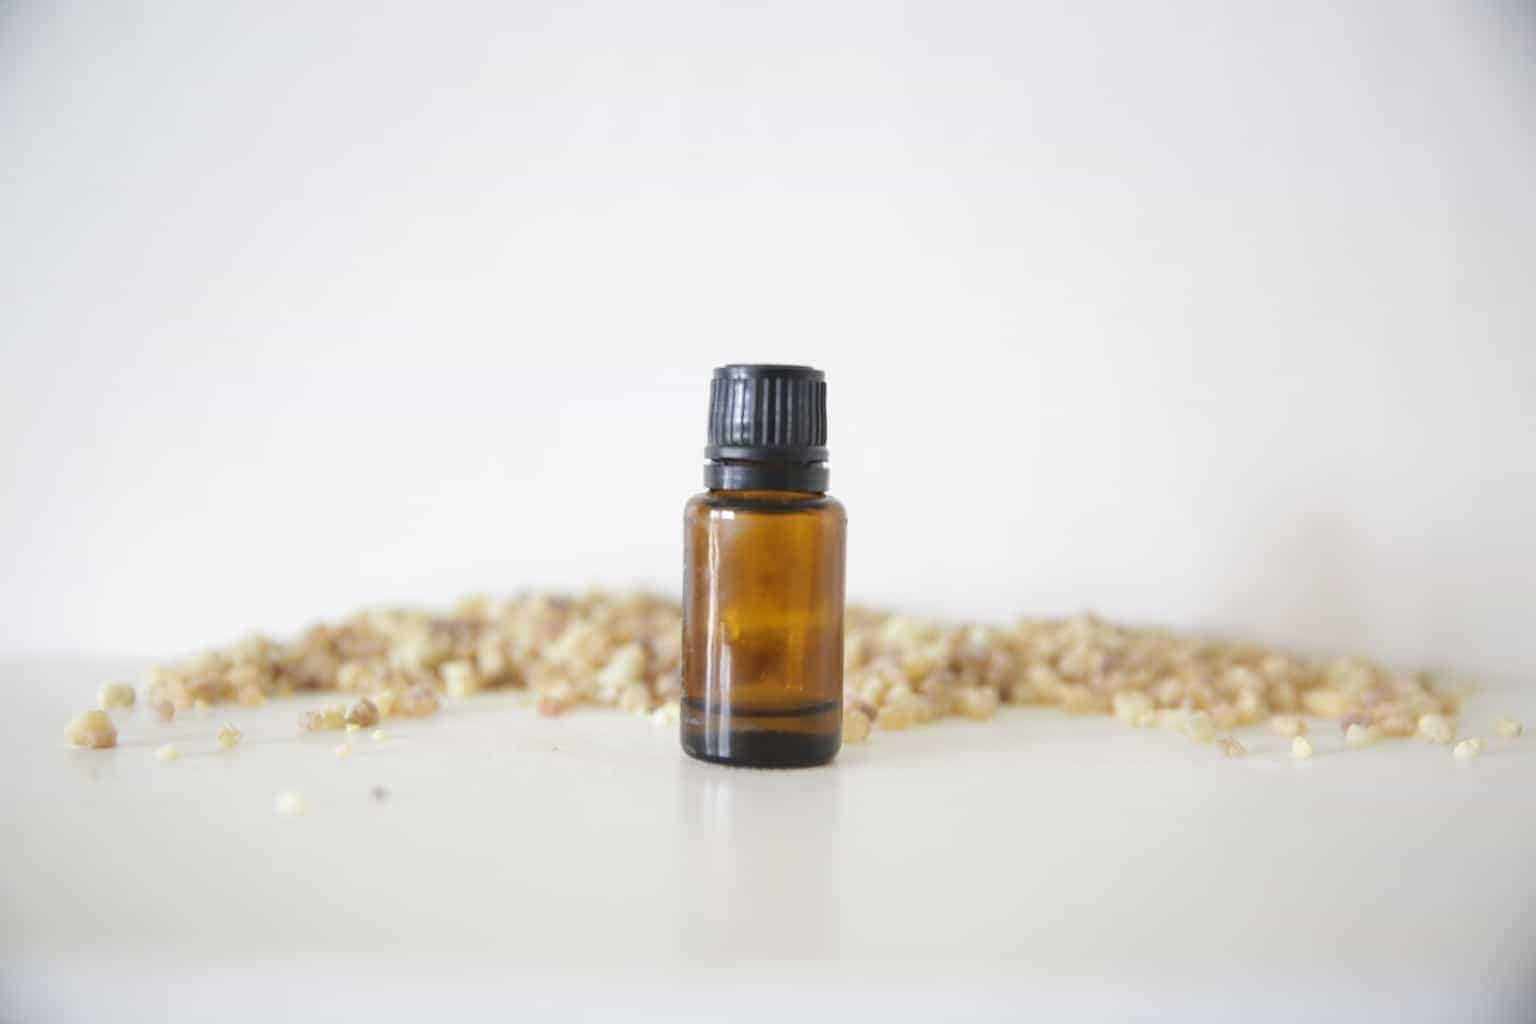 Use frankincense essential oil when you are aren't feeling well to help boost the immune system.